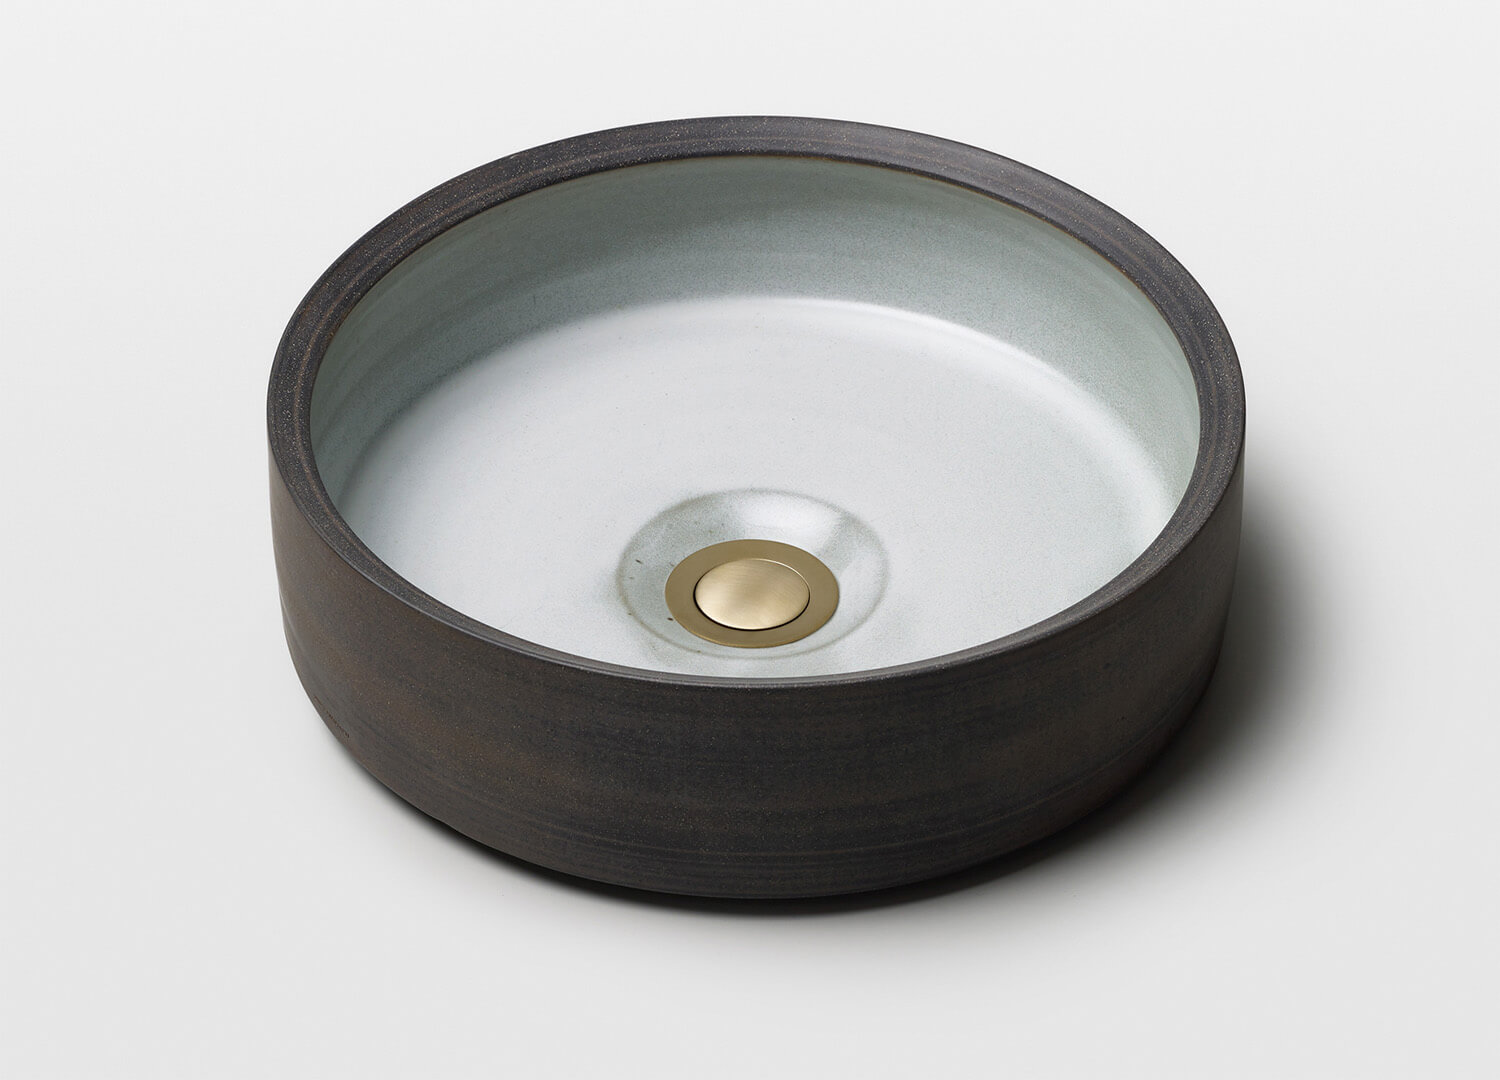 est living denfair 2107 ceramic basin archier